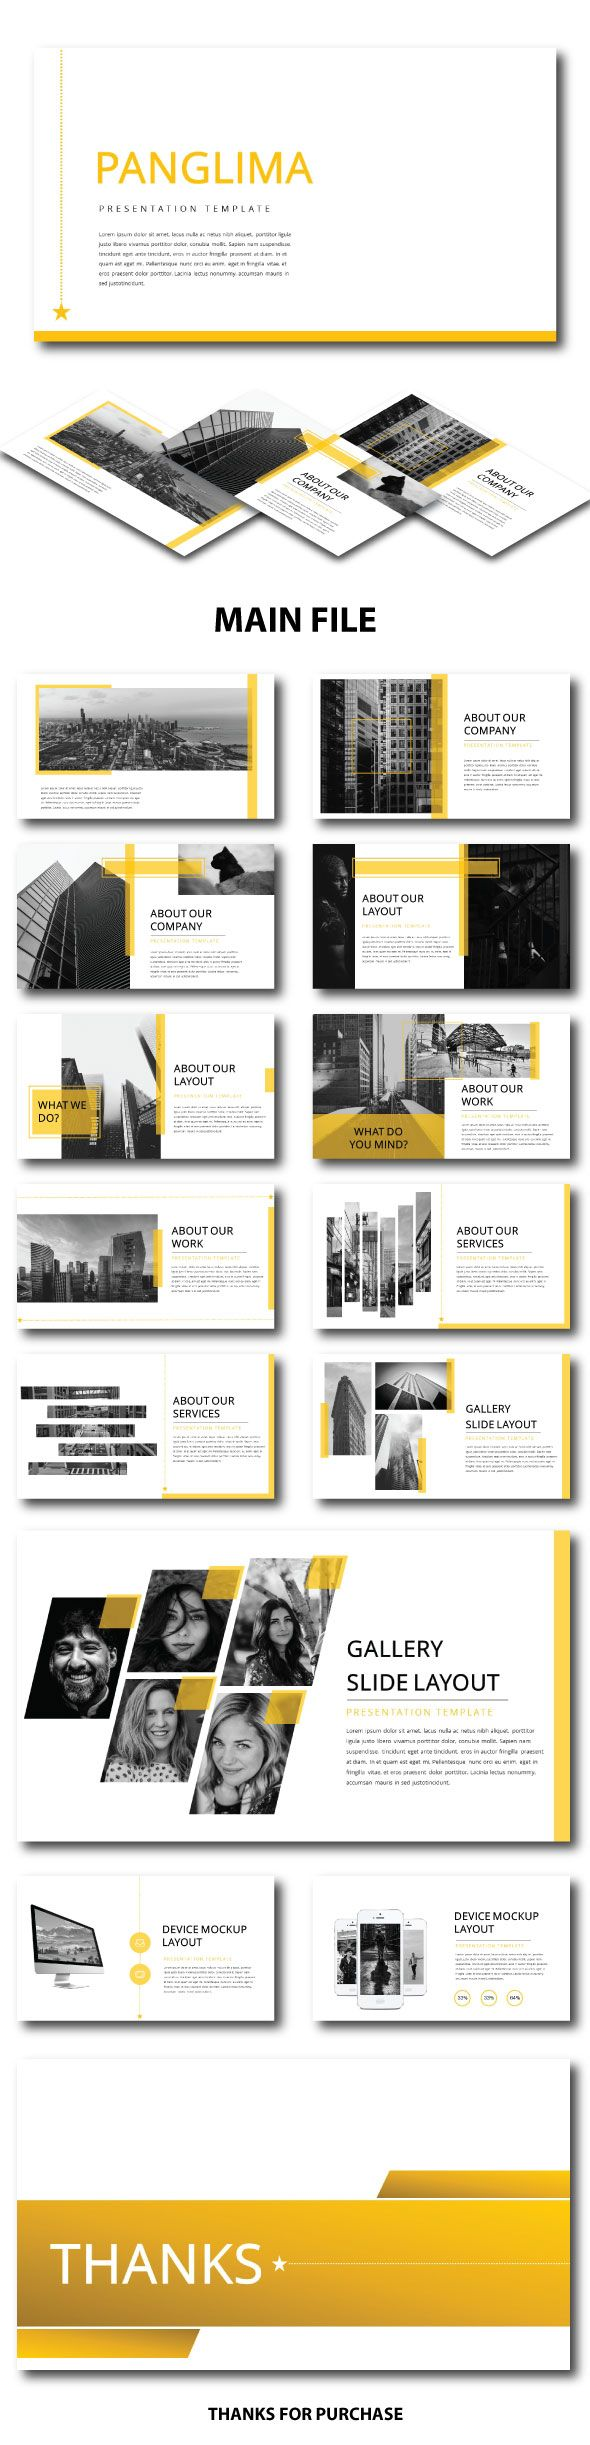 Panglima Multipurpose Template - PowerPoint Templates Presentation Templates